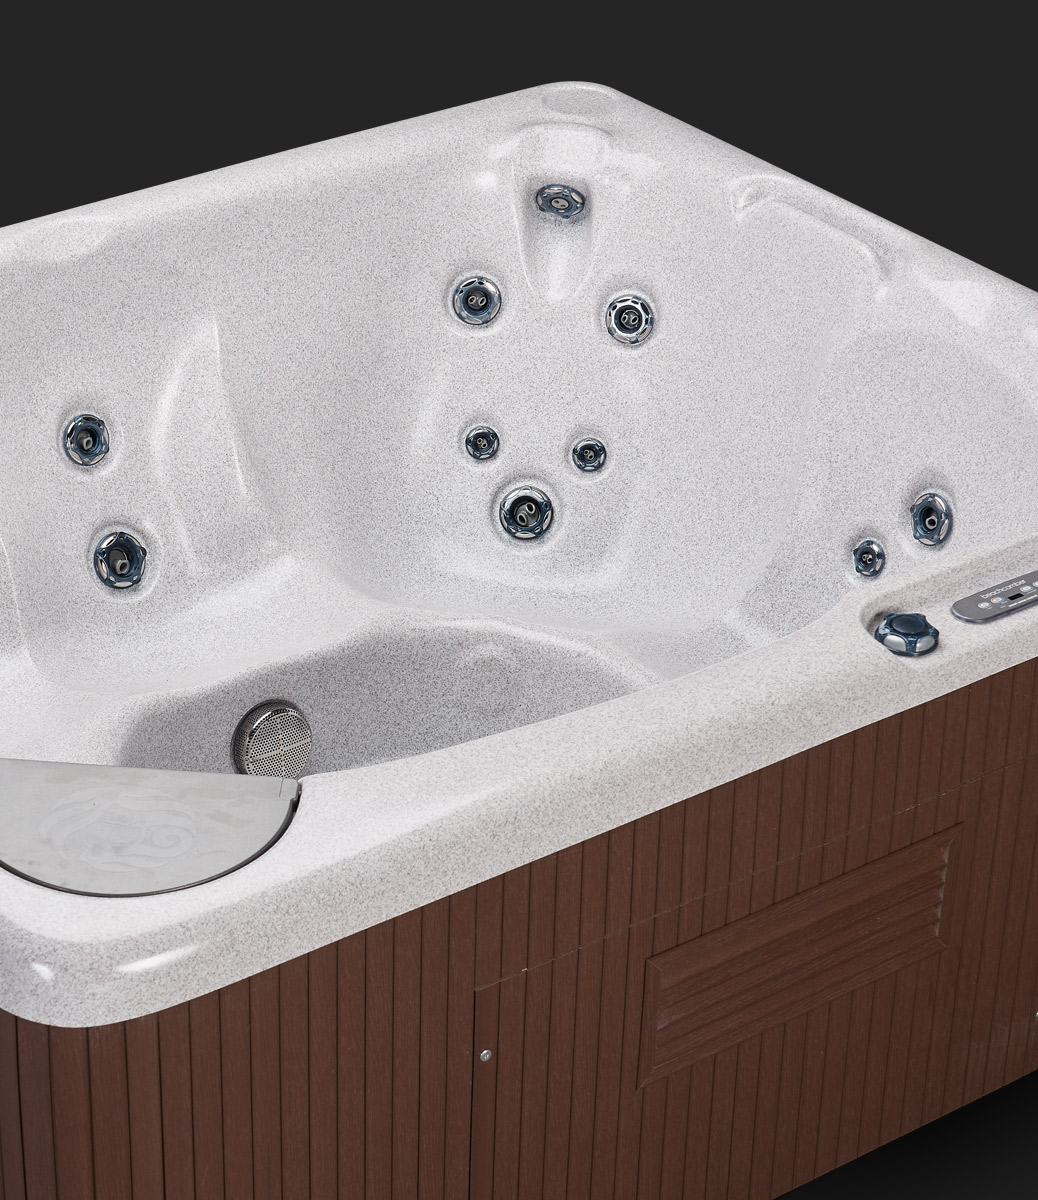 ca near hot tubs spa min sale for corona me dealers tub max